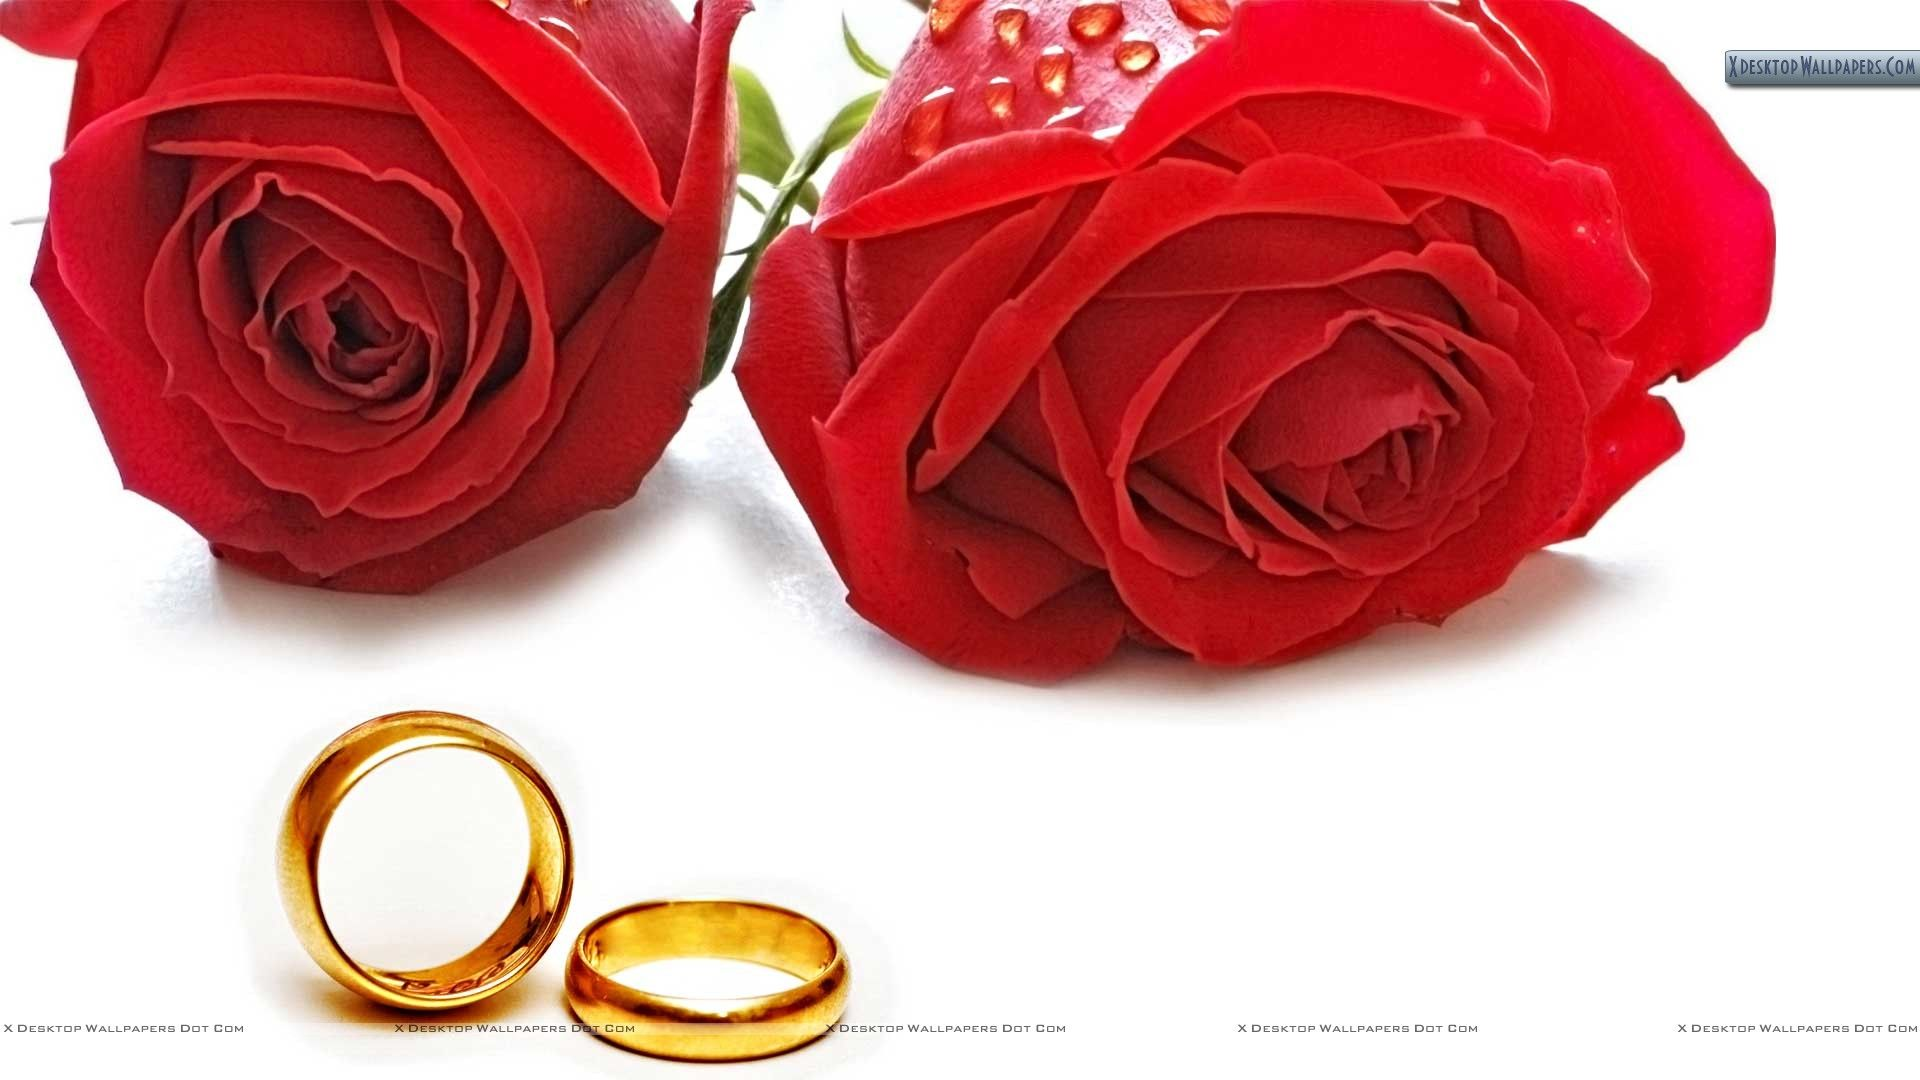 rose wedding ring picture of two roses Red Roses And Golden Wedding Ring Wallpaper